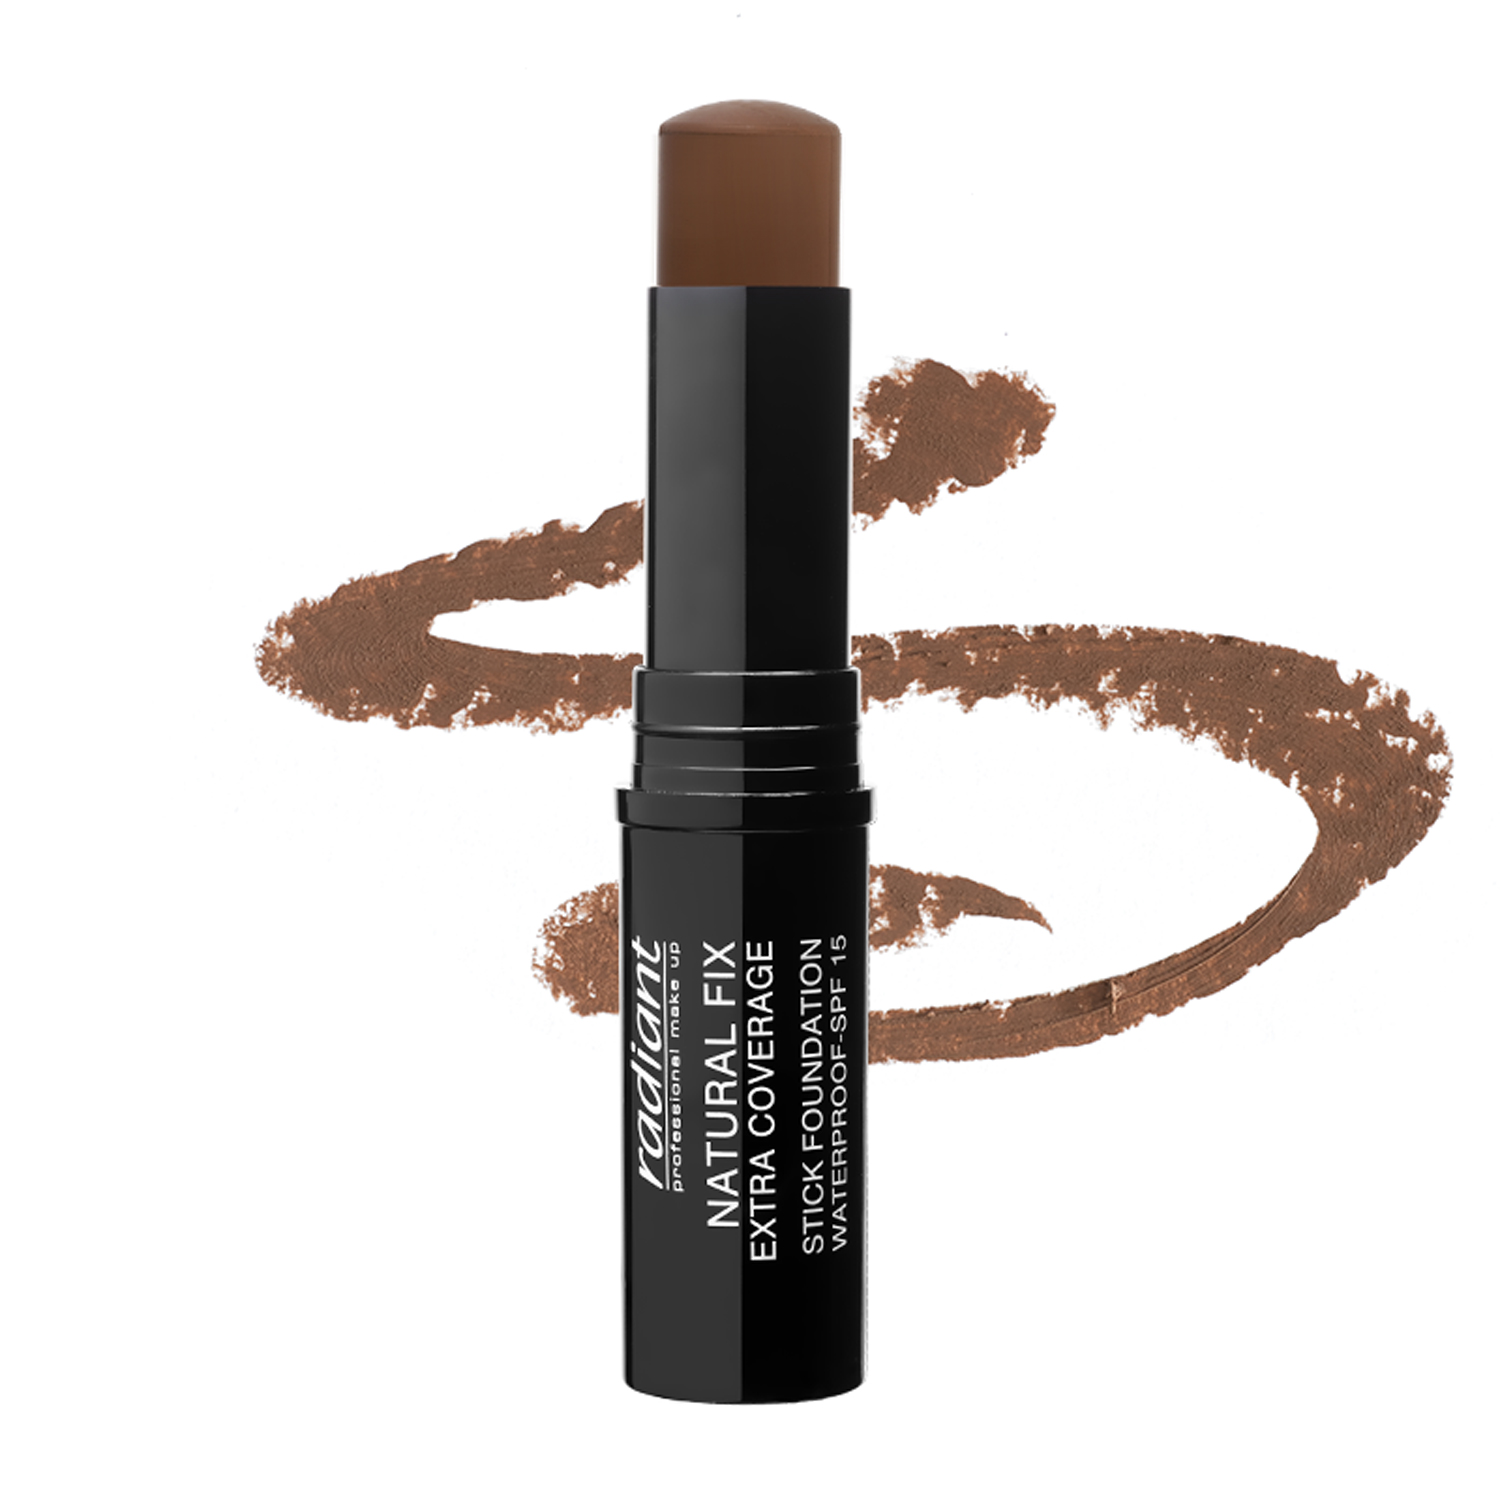 NATURAL FIX EXTRA COVERAGE STICK FOUNDATION  WATERPROOF SPF 15 (08 PEACAN)